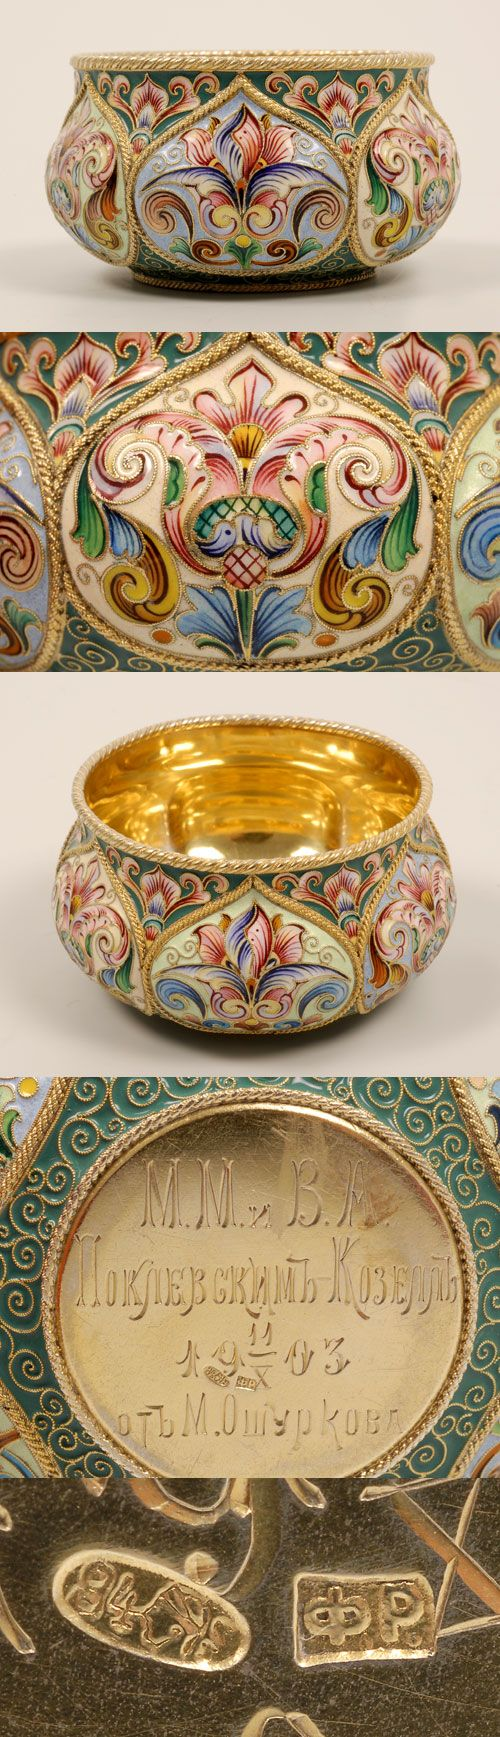 A Russian silver gilt and shaded cloisonne enamel bowl, Feodor Ruckert, Moscow, circa 1896-1908. The bulbous circular bowl with raised drop-shape panels decorated in shaded multi-color floral and foliate motifs with alternating grounds of pale blue, celadon and peach against an overall green ground.